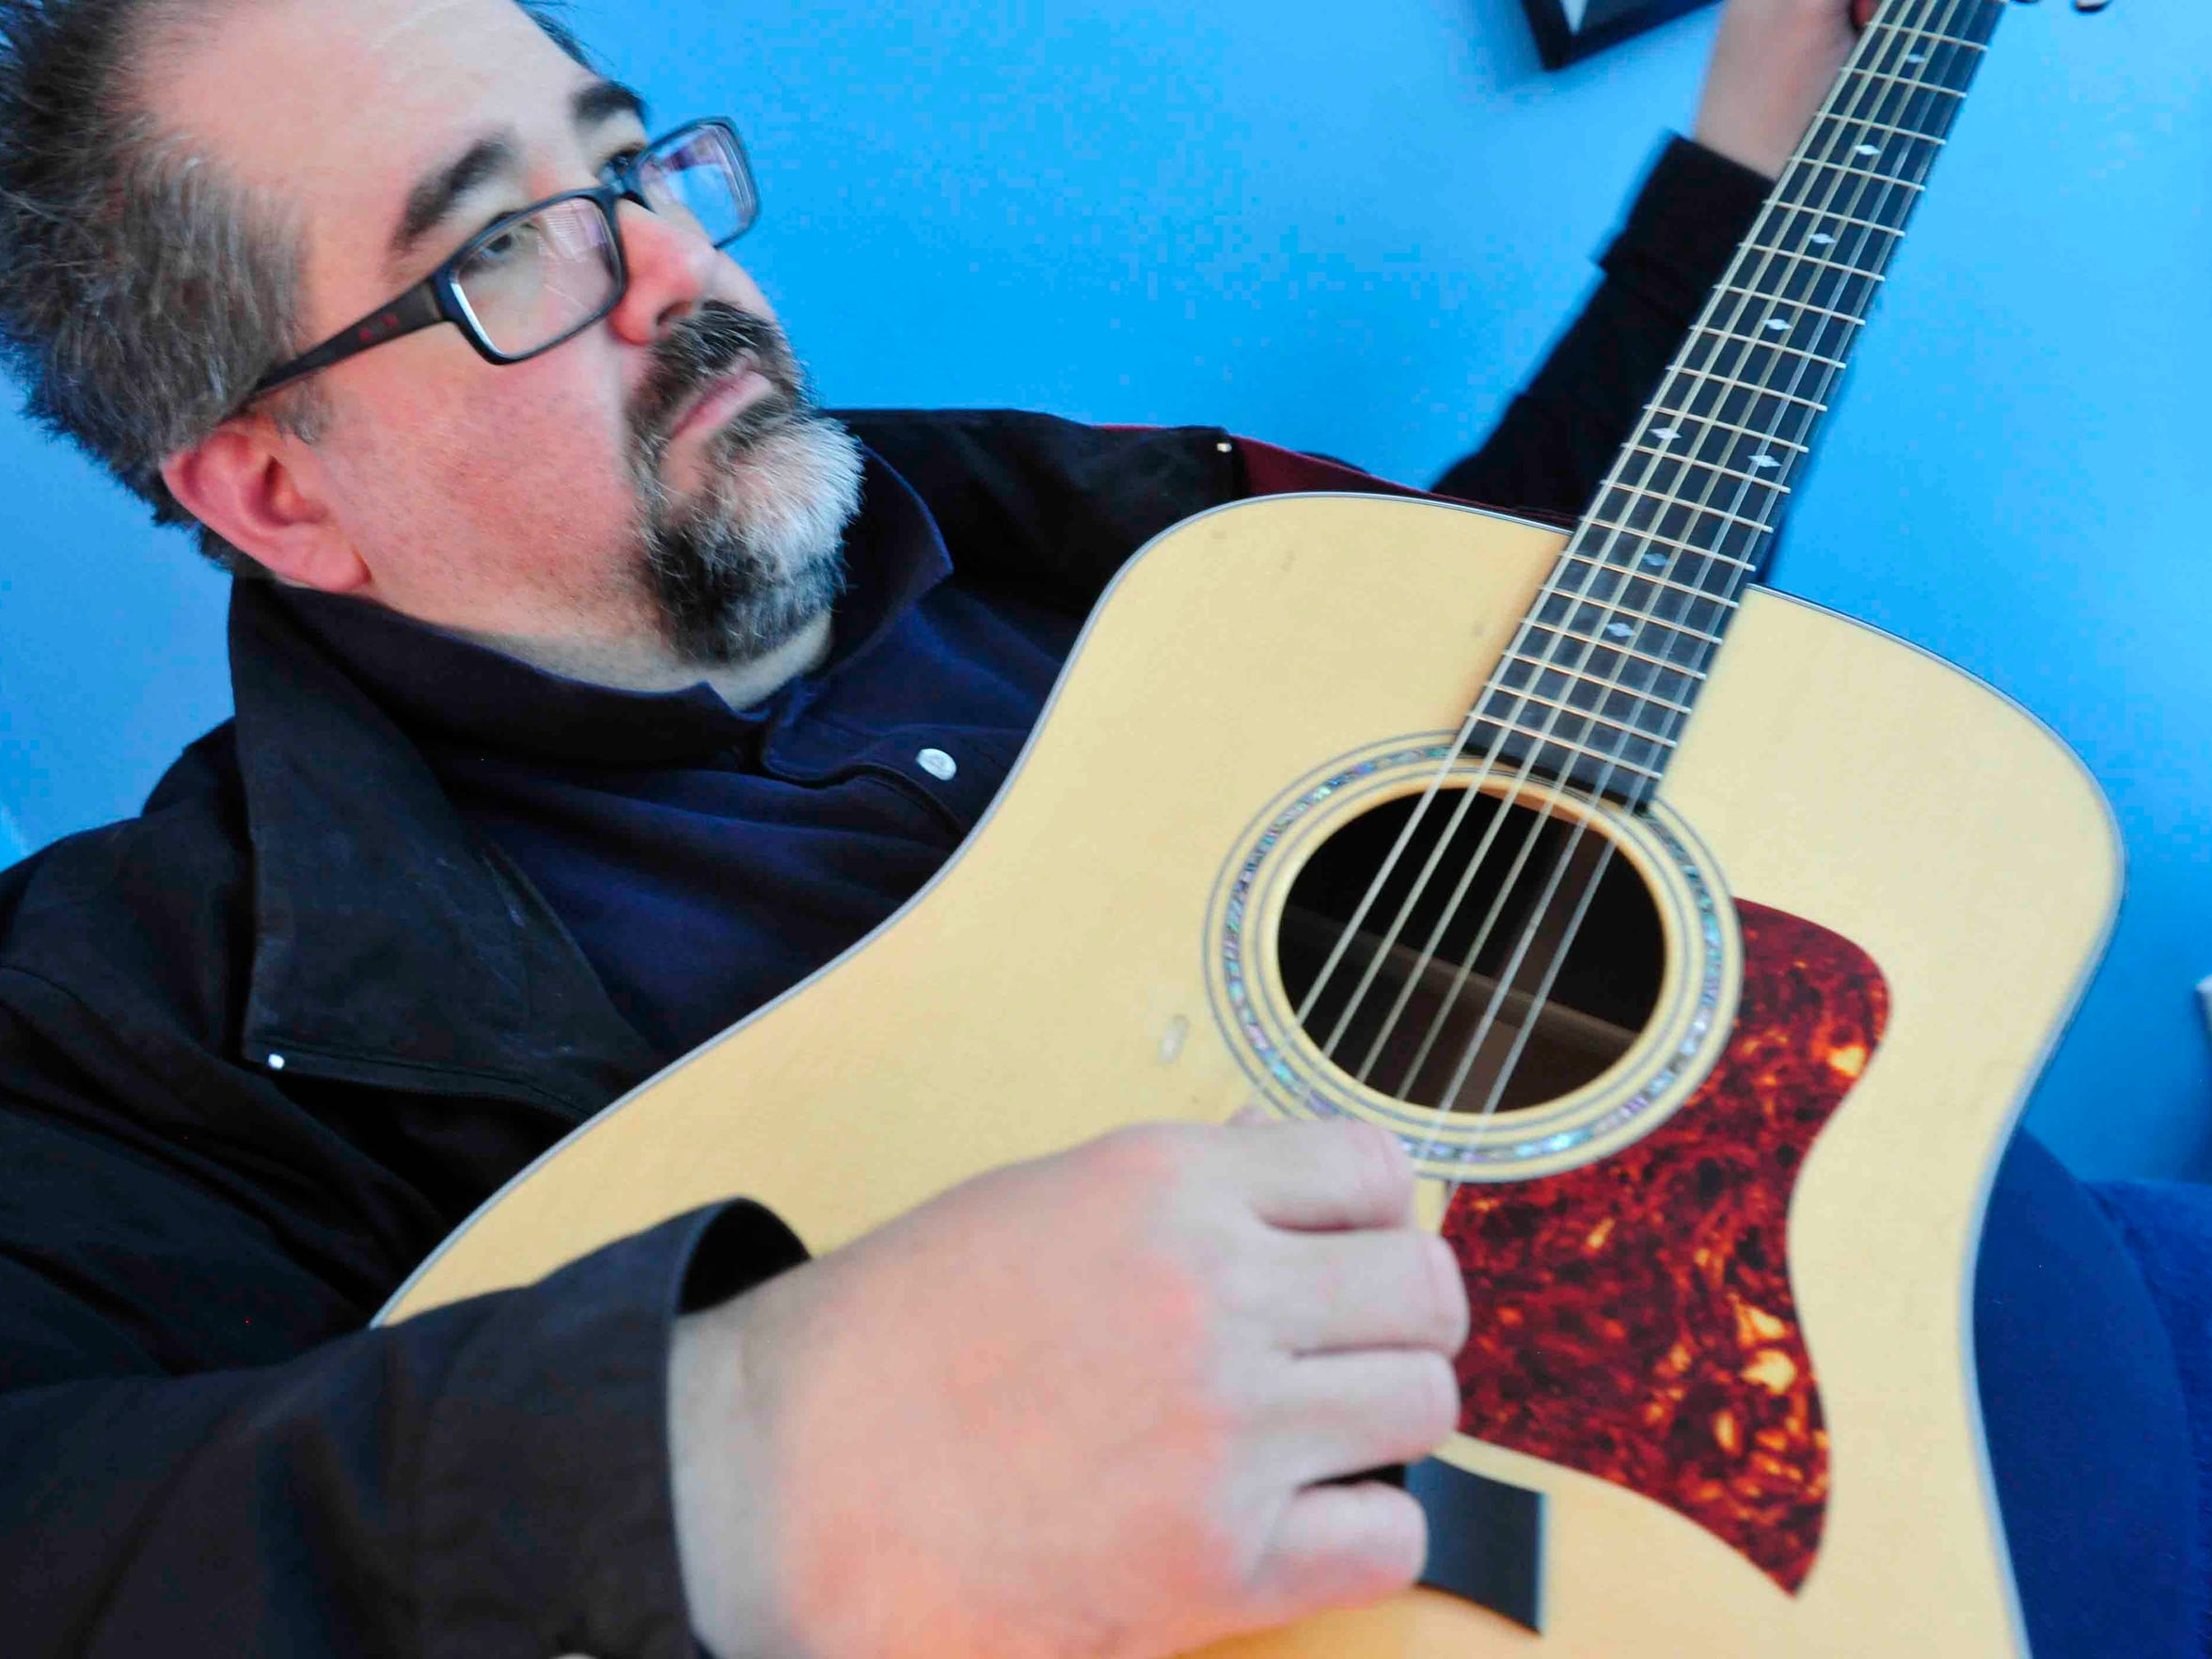 Jim Reilley, co-founder of the New Dylans, works on songwriting at his Berry Hill writing studio.